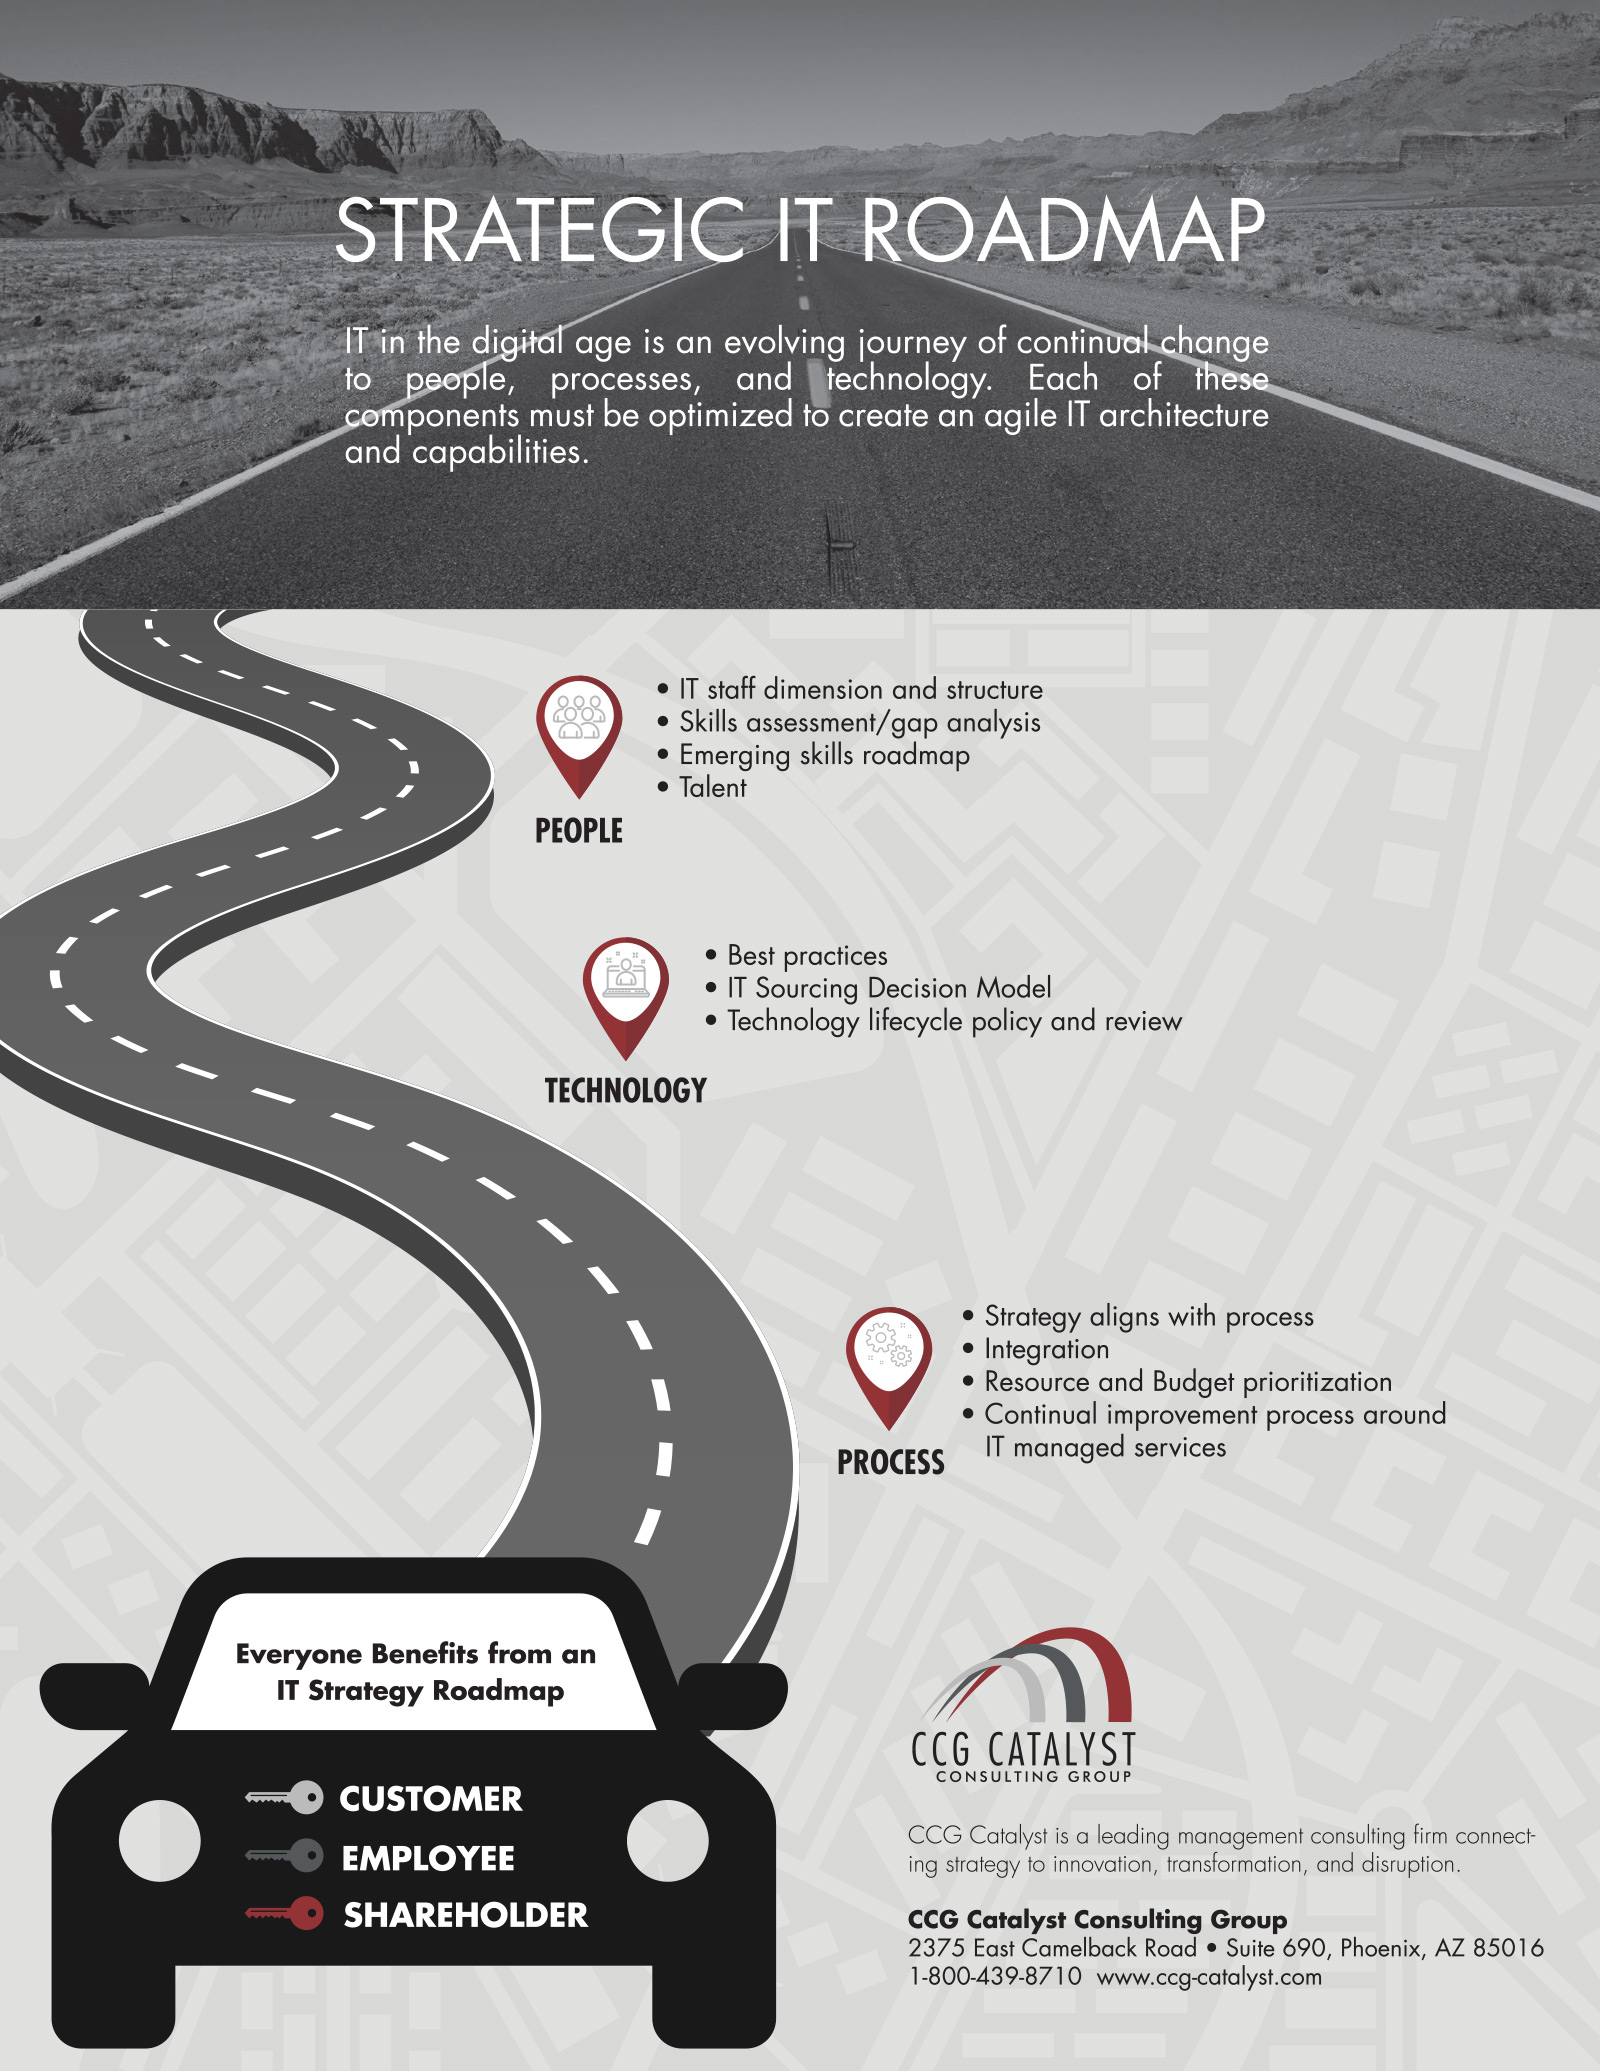 Strategic IT Roadmap by CCG Catalyst Consulting Group